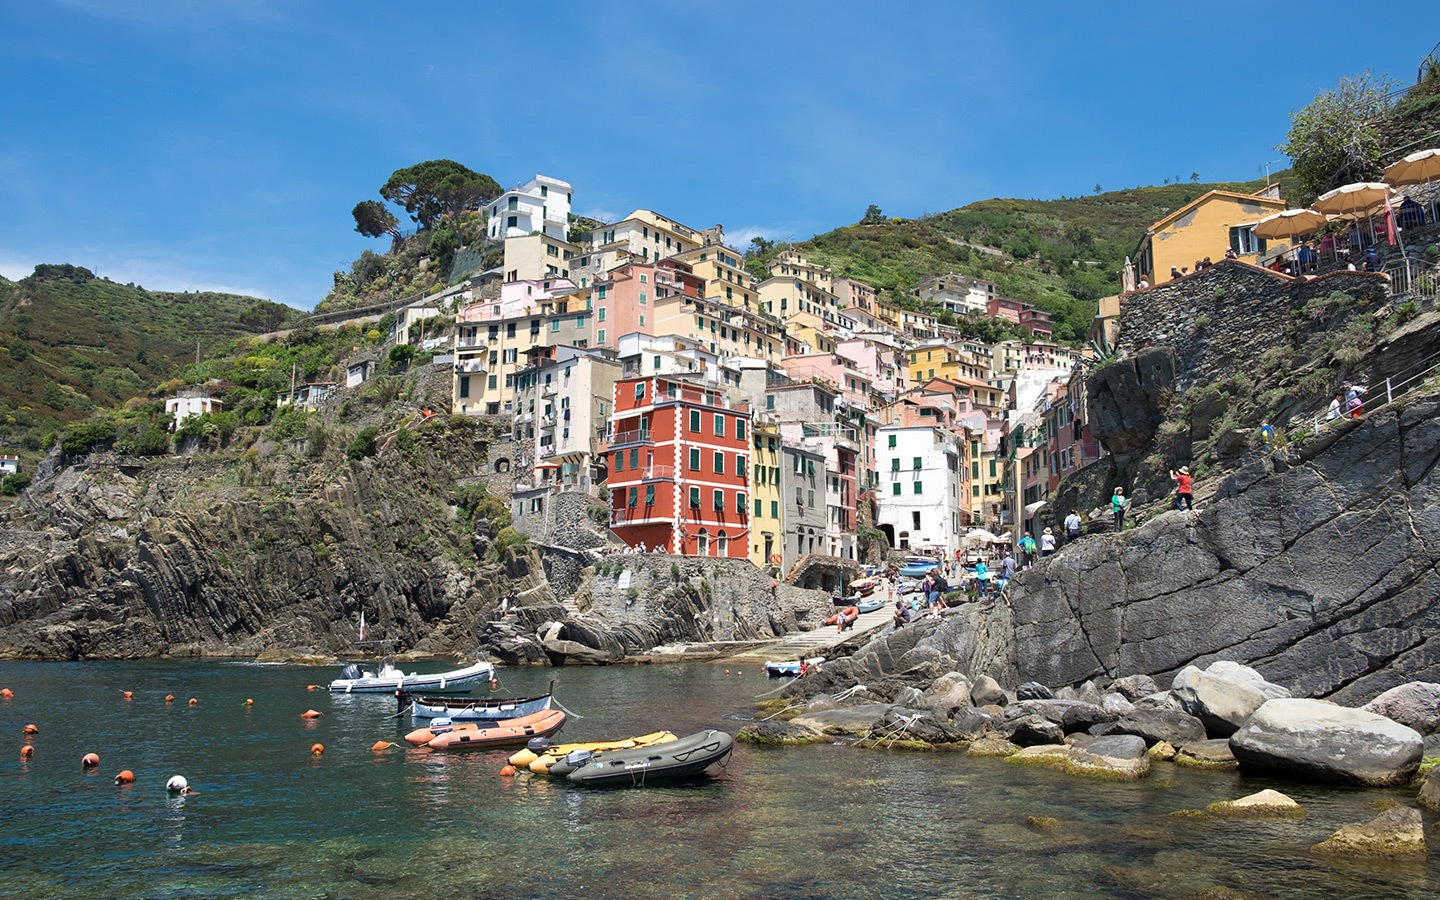 The first-timers guide to visiting the Cinque Terre, Italy